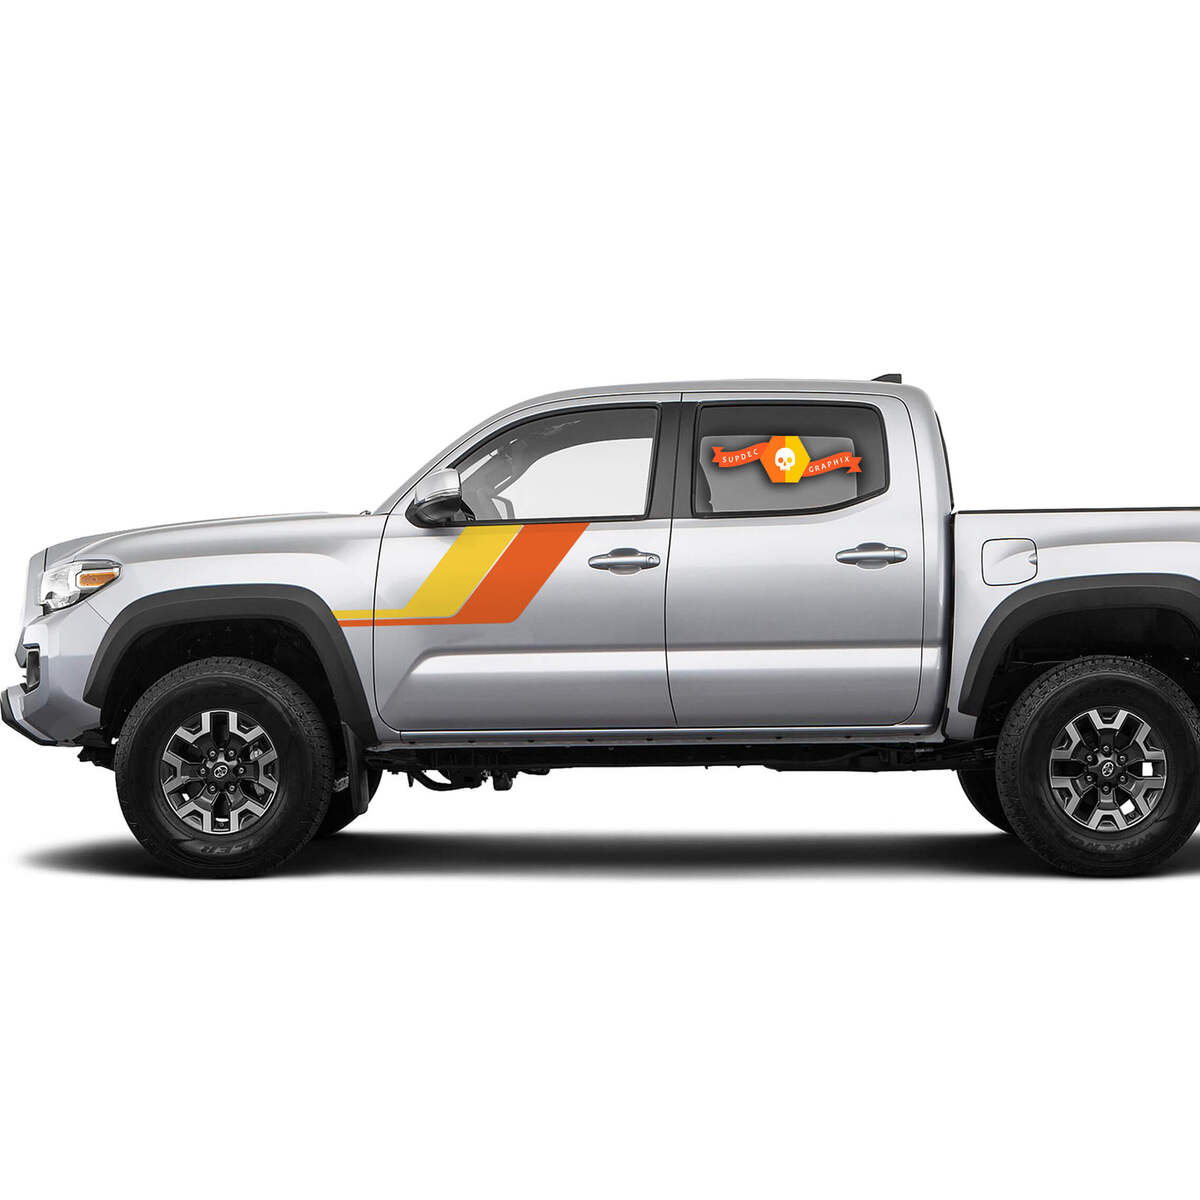 Toyota Tacoma Trd Sport Pro Side Retro Vintage Stripes Decal Graphics 2016 2020 Style 2